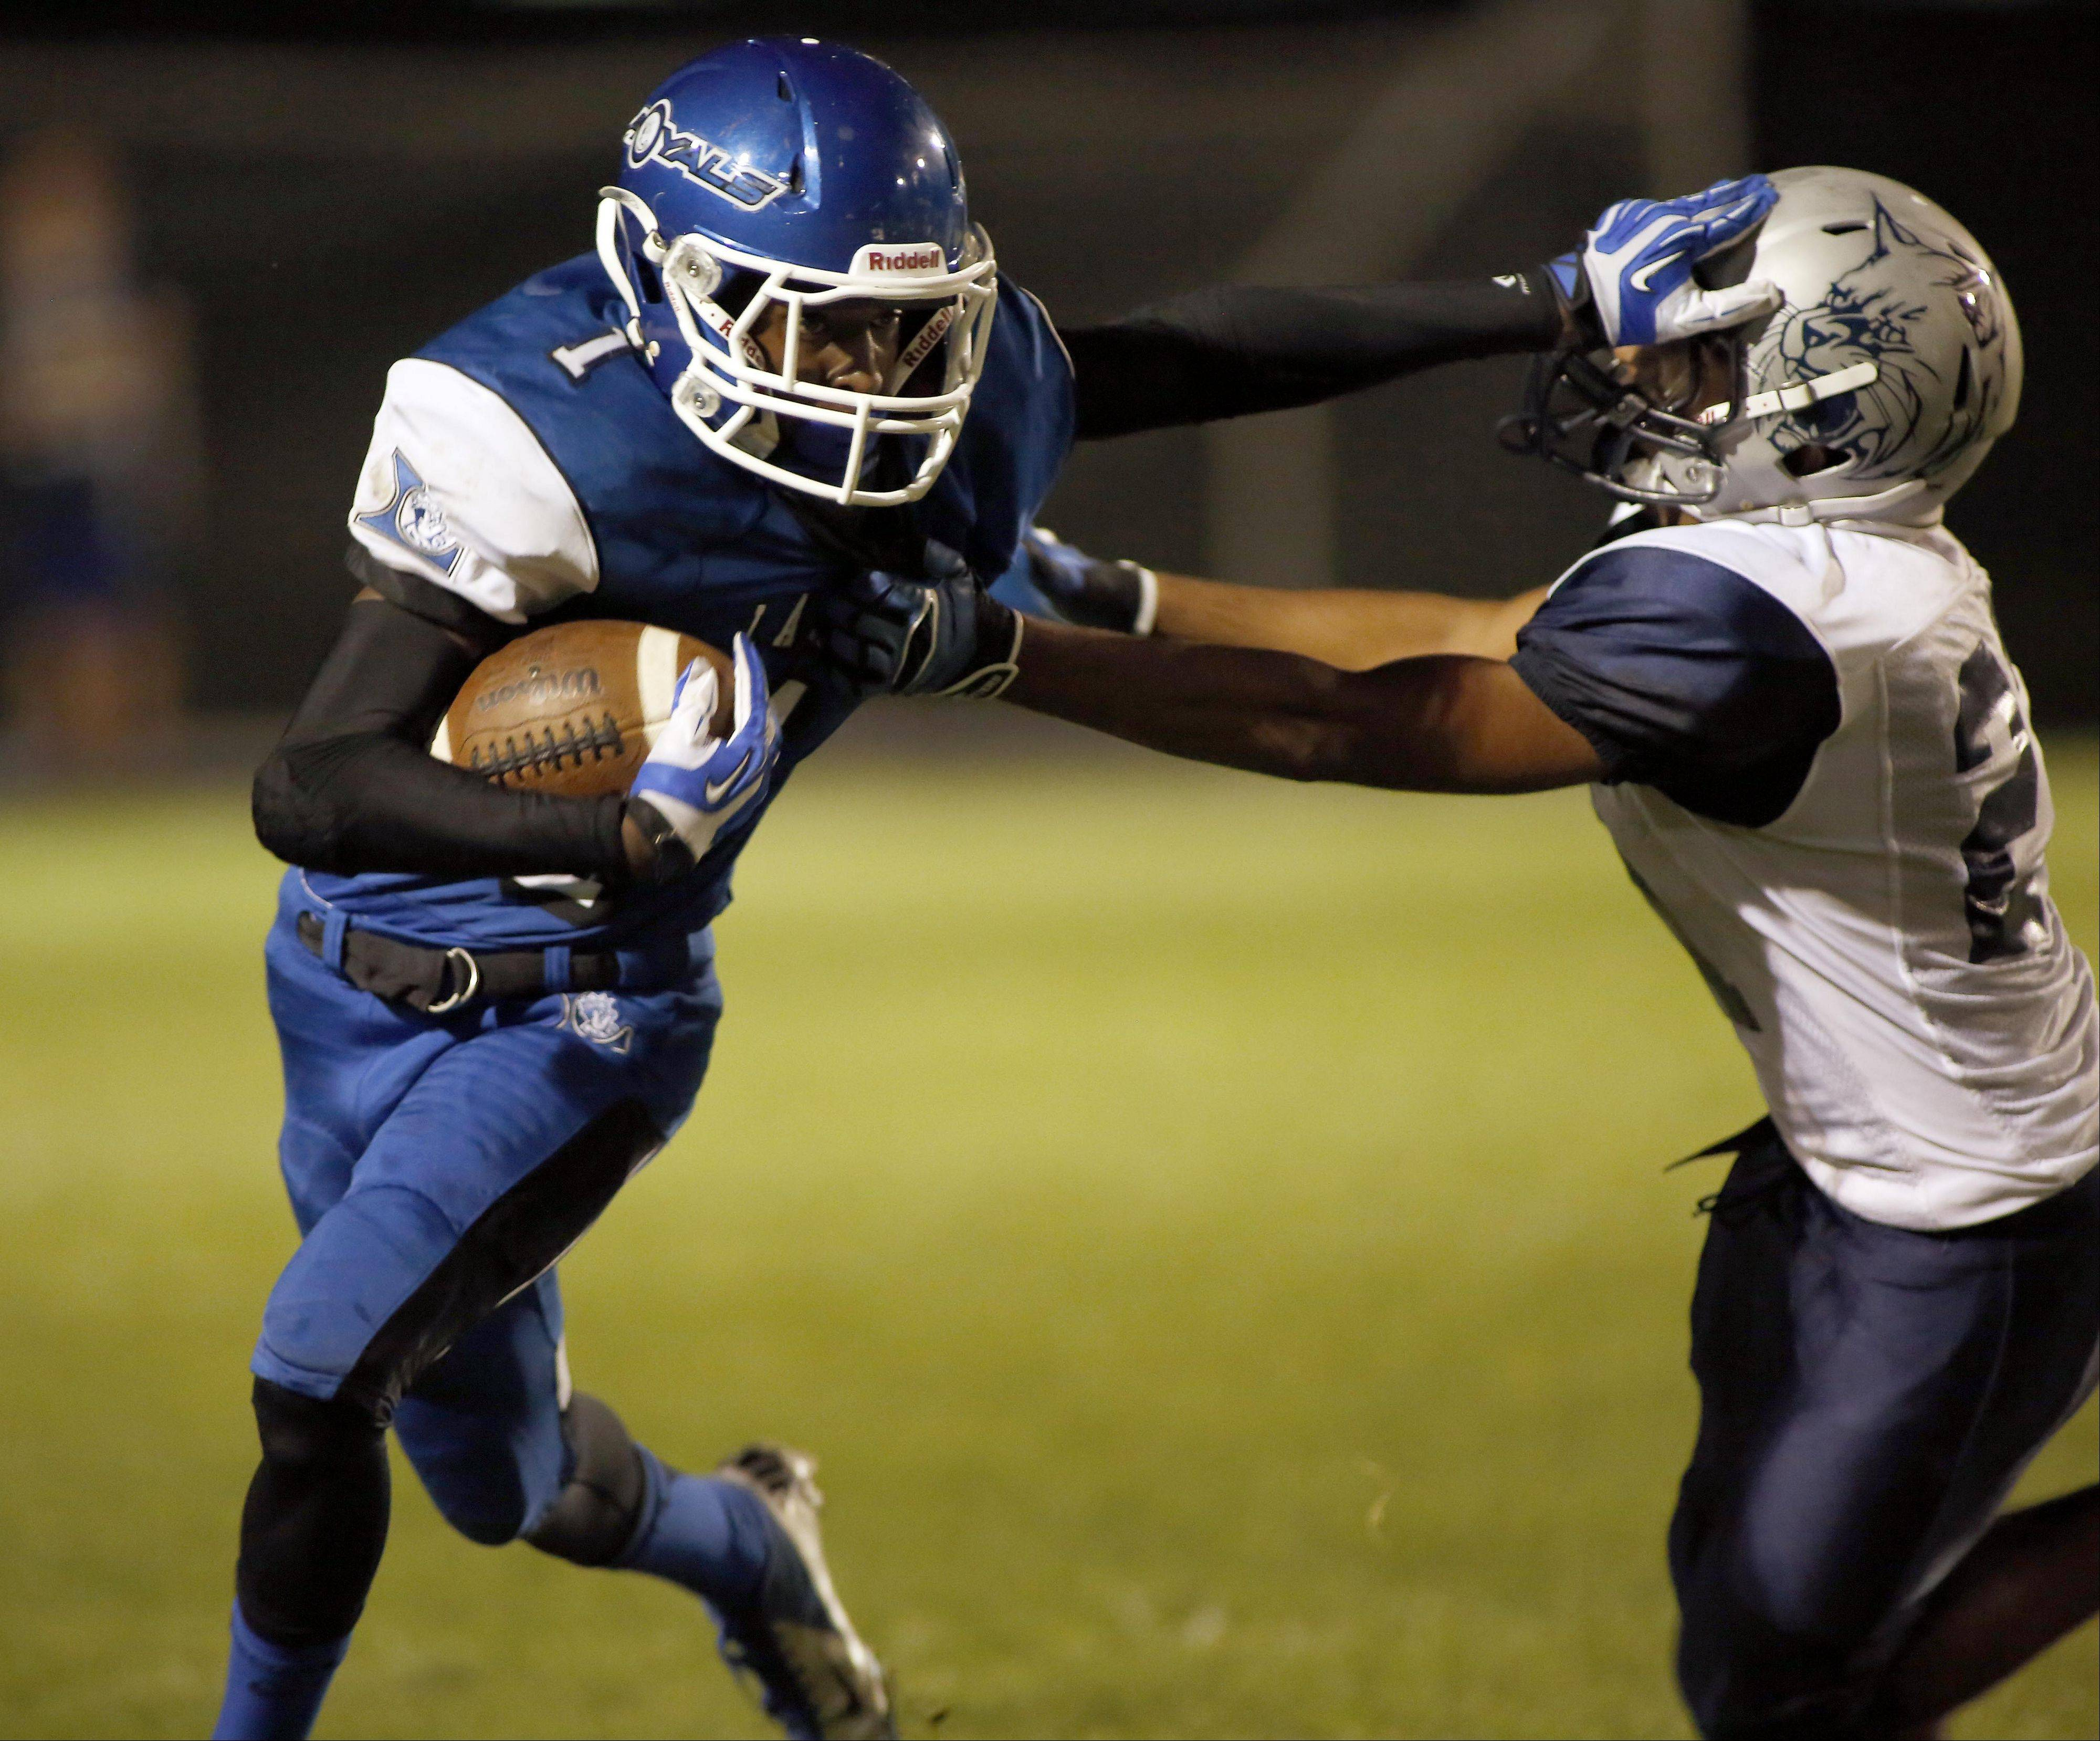 Larkin's Jarelle Shipp moves past a West Chicago player during action at Memorial Field in Elgin Friday night.